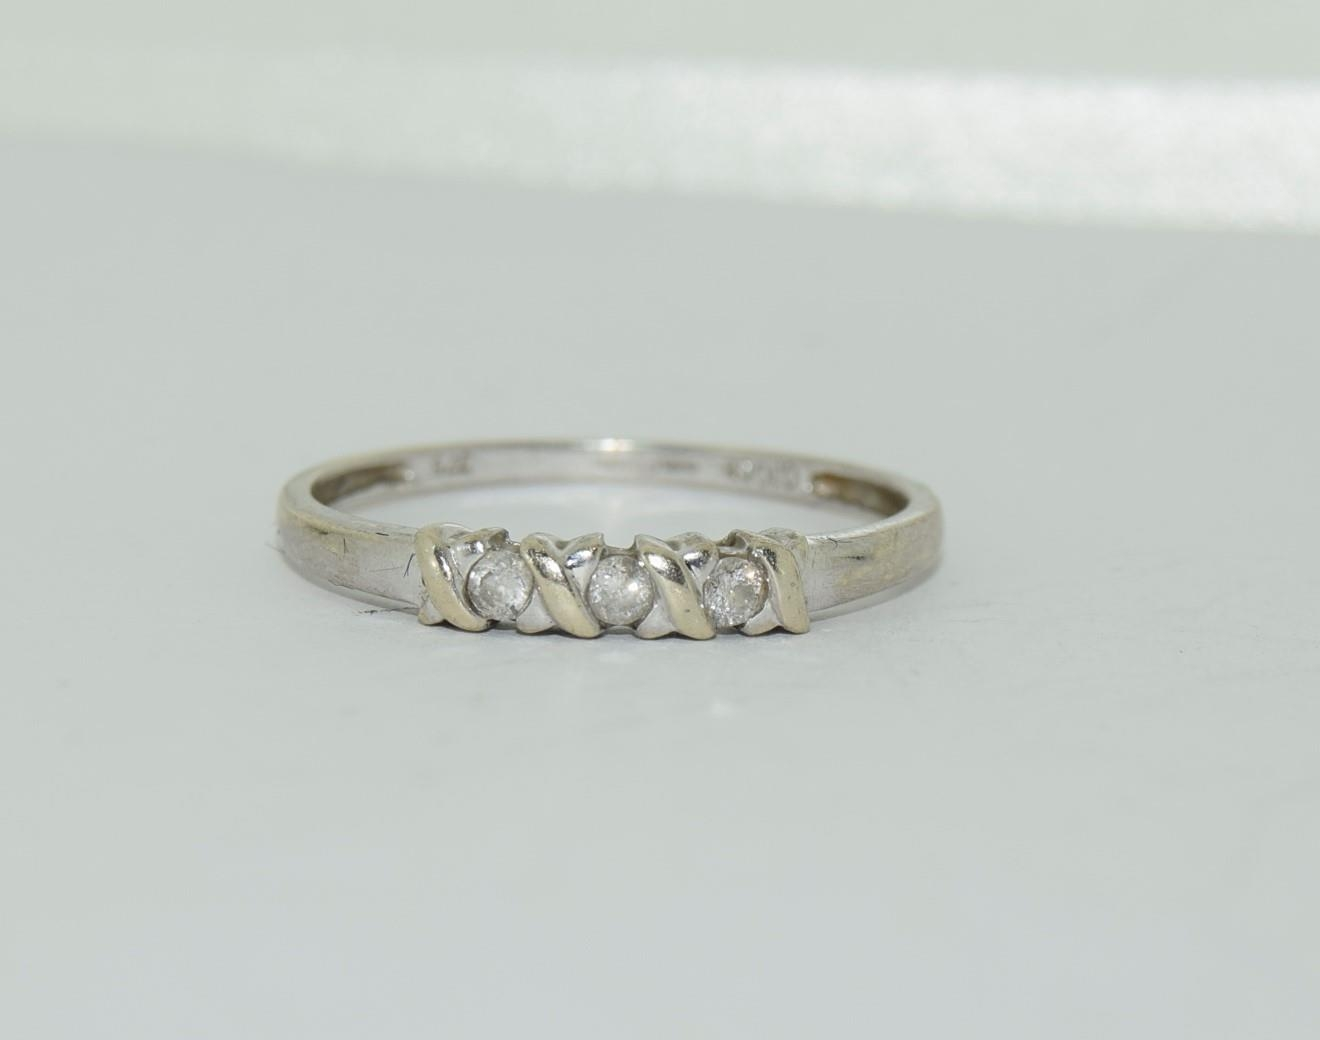 9ct white gold diamond 3 stone ring h/m for 0.1ct size Q - Image 11 of 12